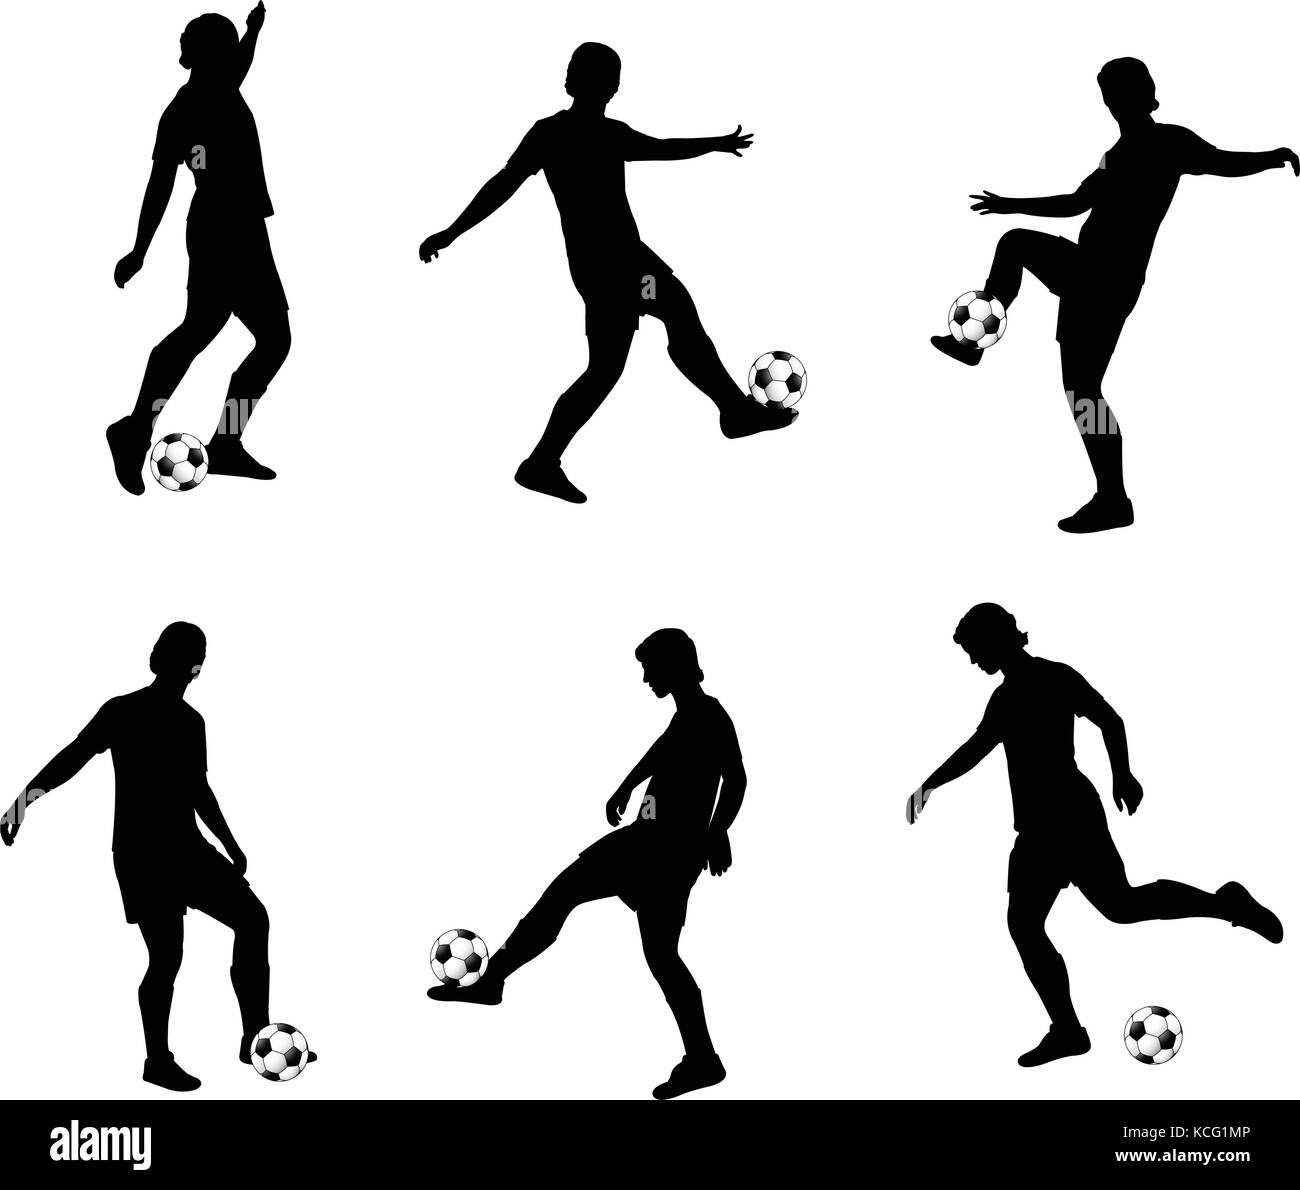 soccer players silhouettes collection - vector - Stock Vector